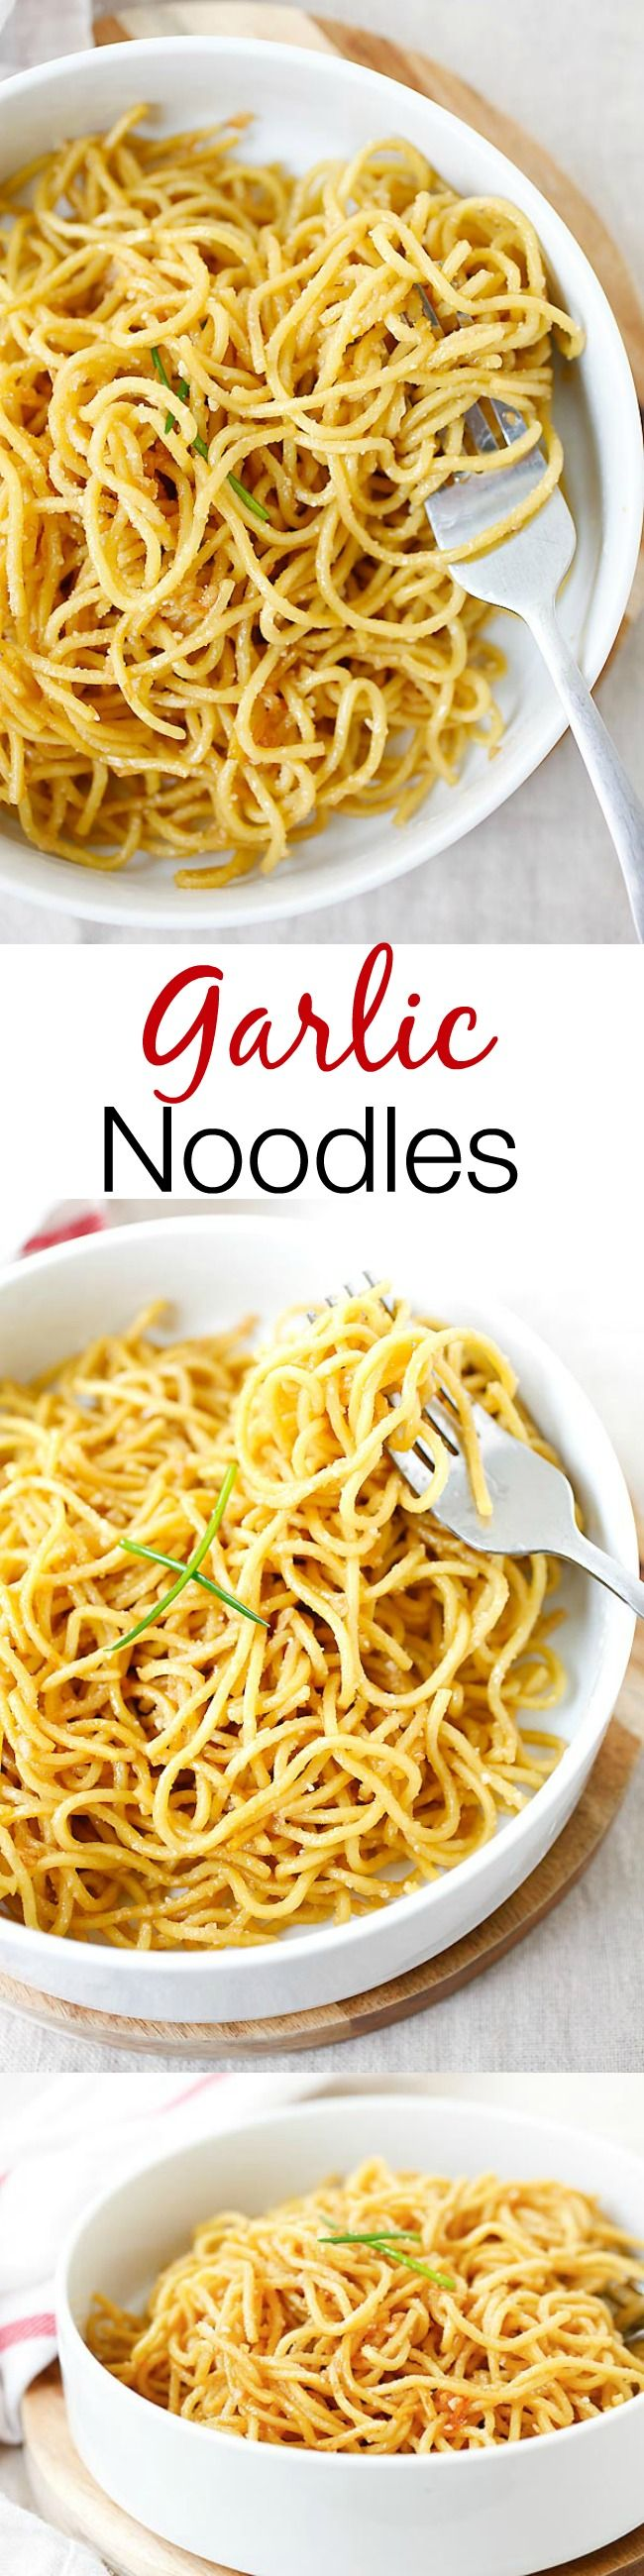 Garlic noodles – garlicky and buttery noodles with Parmesan cheese. SO easy and delicious you won't stop eating!!   rasamalaysia.com